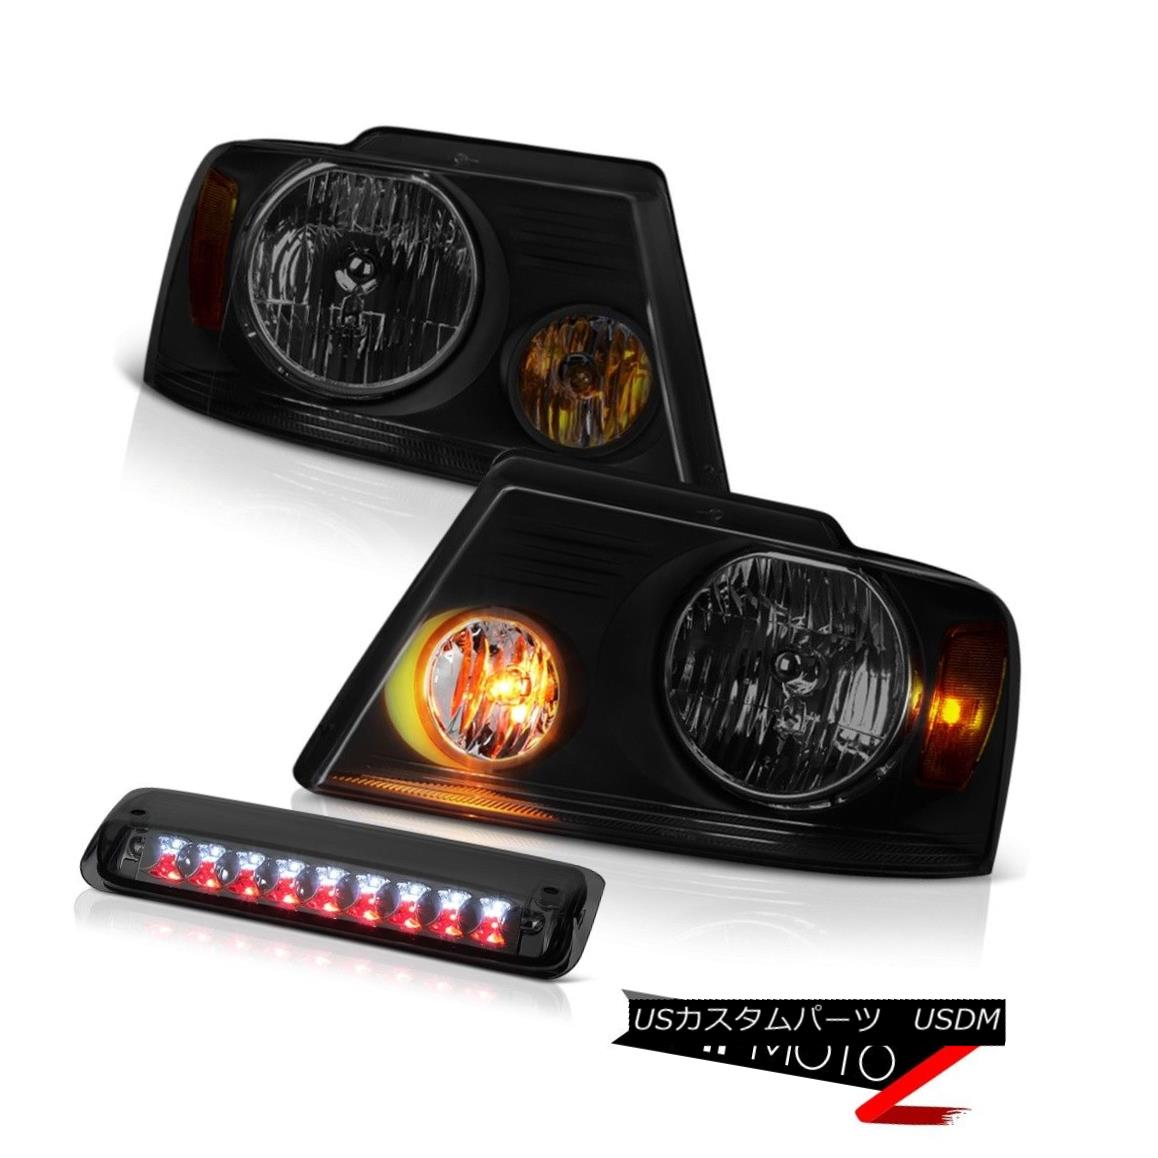 テールライト 2004-2008 Ford F150 STX Darkest Smoke Headlamps Phantom Roof Brake Lamp Assembly 2004-2008 Ford F150 STX Darkest Smoke Headlampsファントムルーフブレーキランプアセンブリ